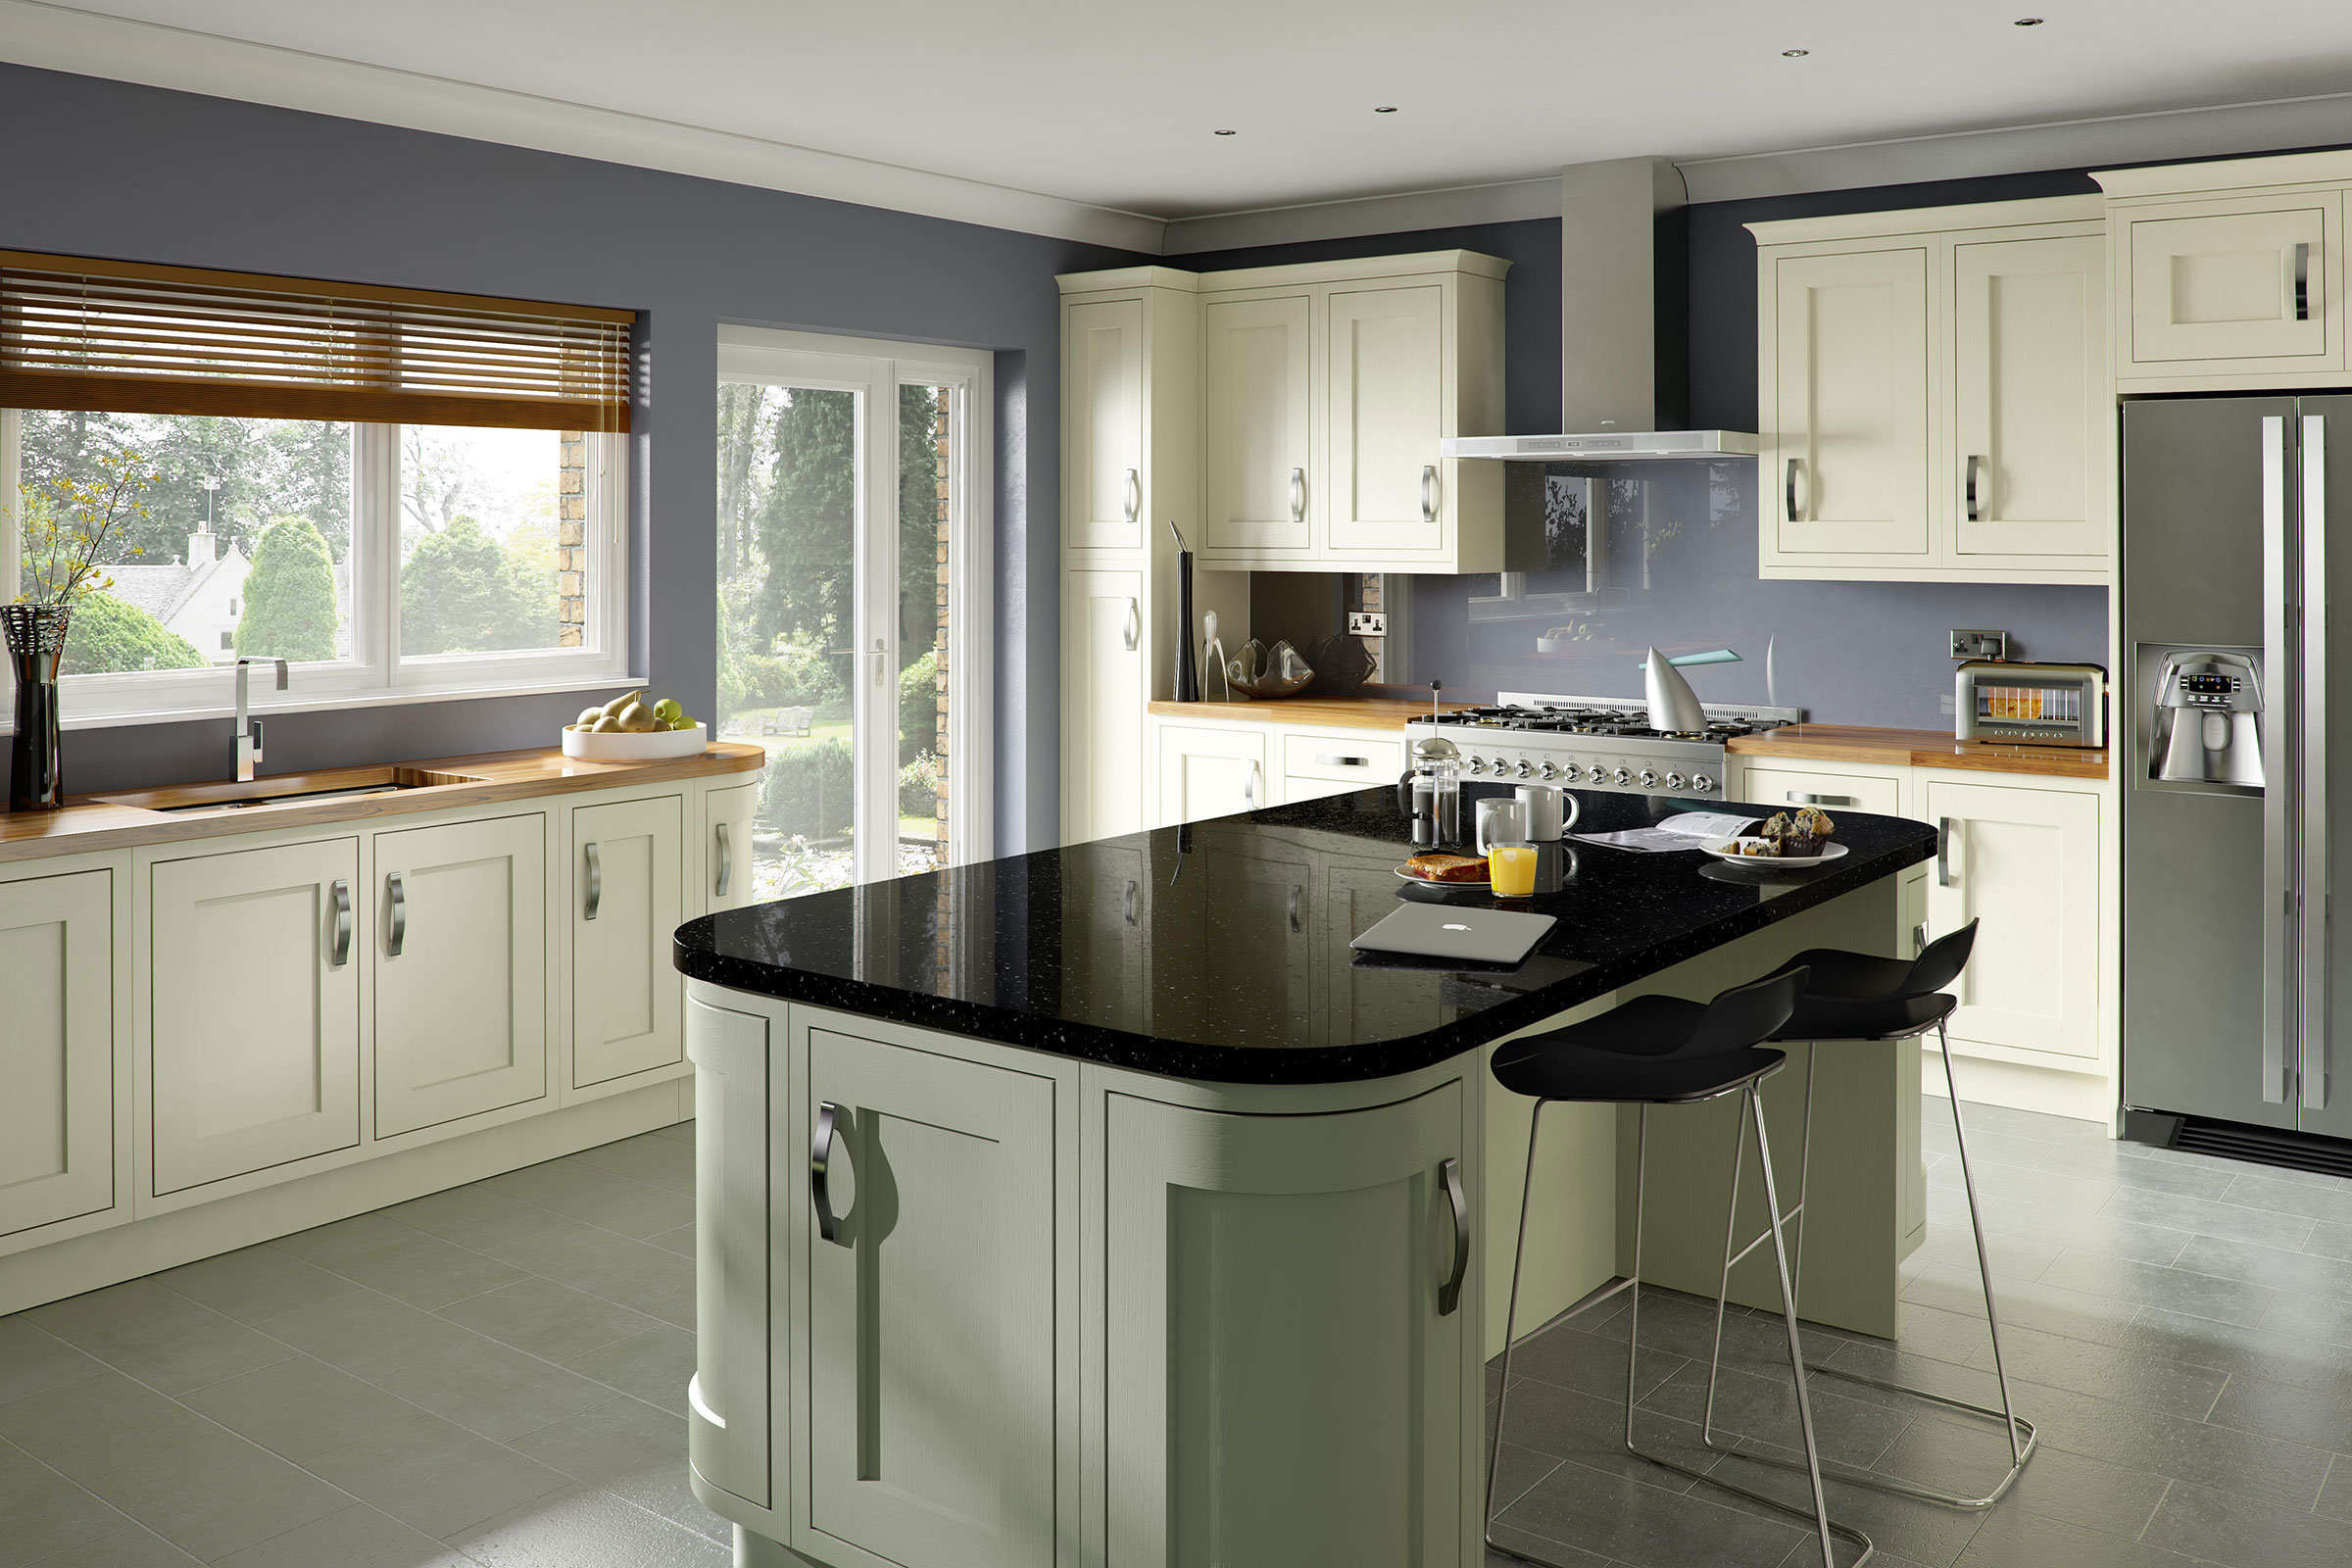 Traditional in-frame kitchen in cream silver and black